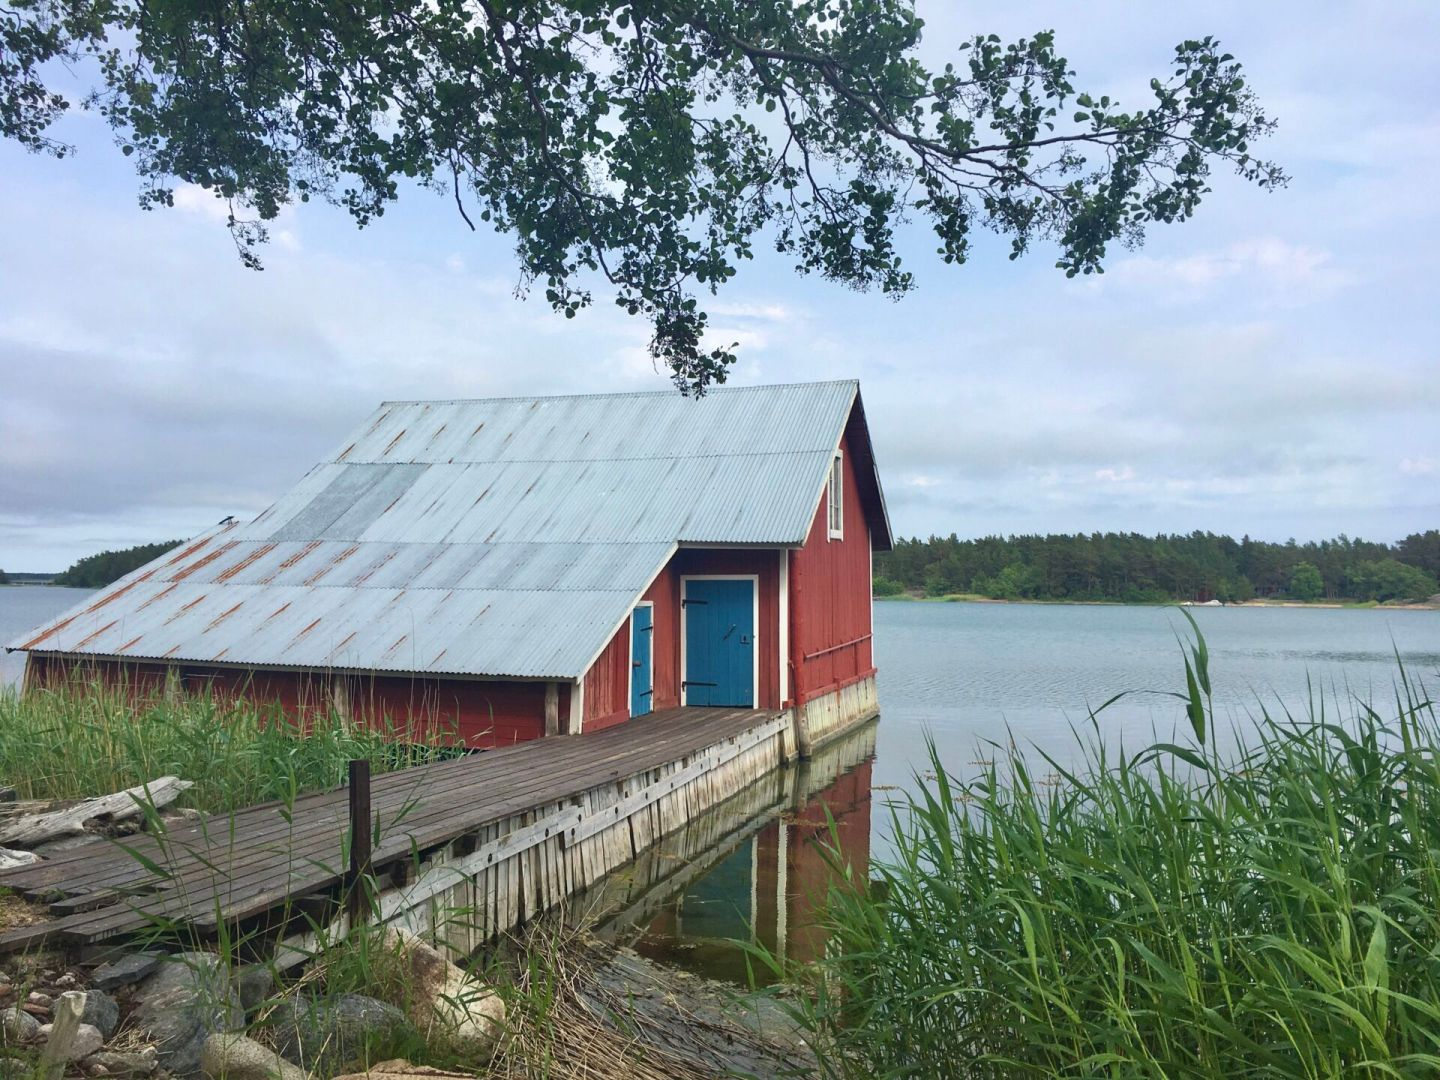 Travel Diary: Summer Vacation Part One – Midsummer in the Archipelago